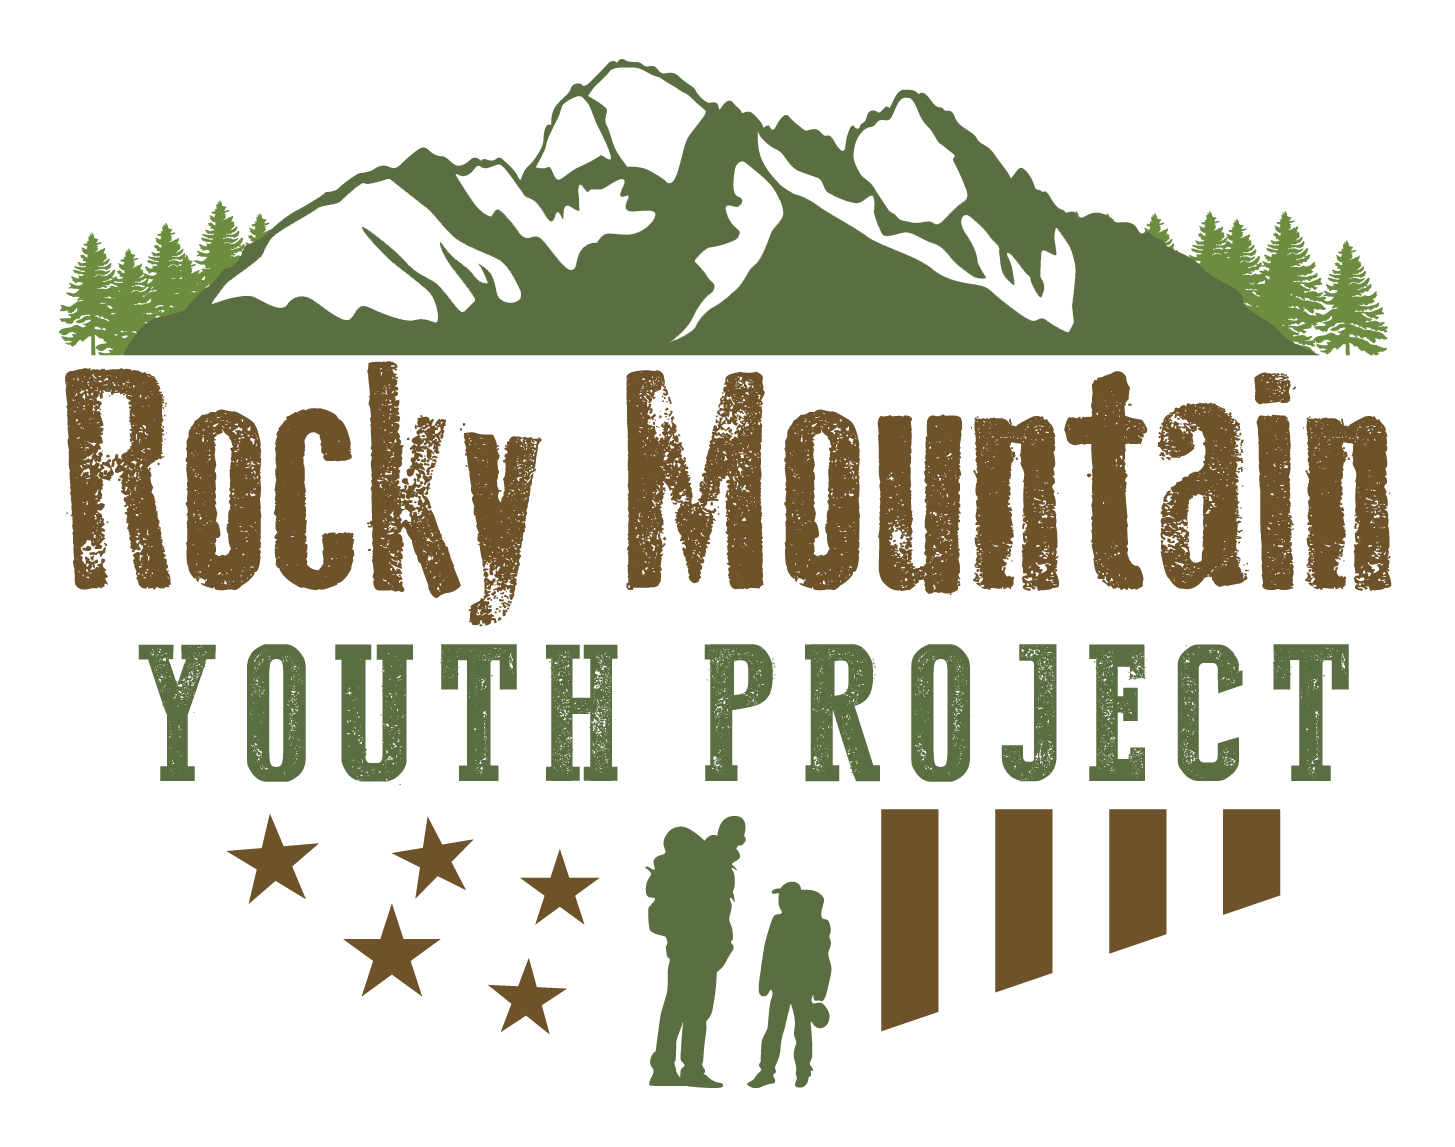 Rocky Mountain Youth Project